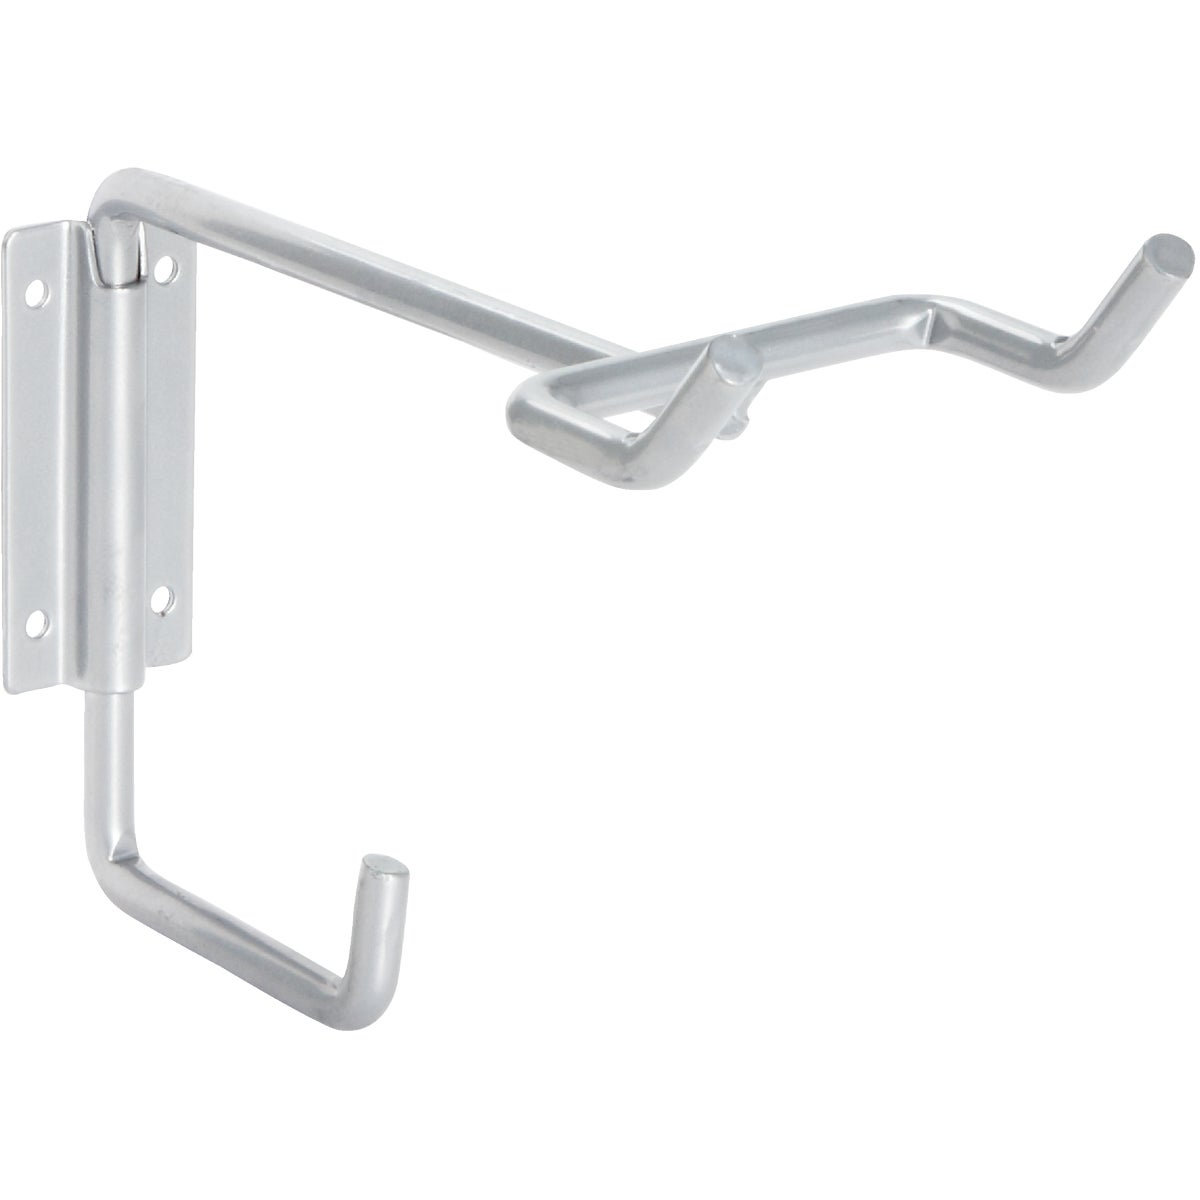 OUTDR POWER TOOL HANGER - 259497 by Do it Best